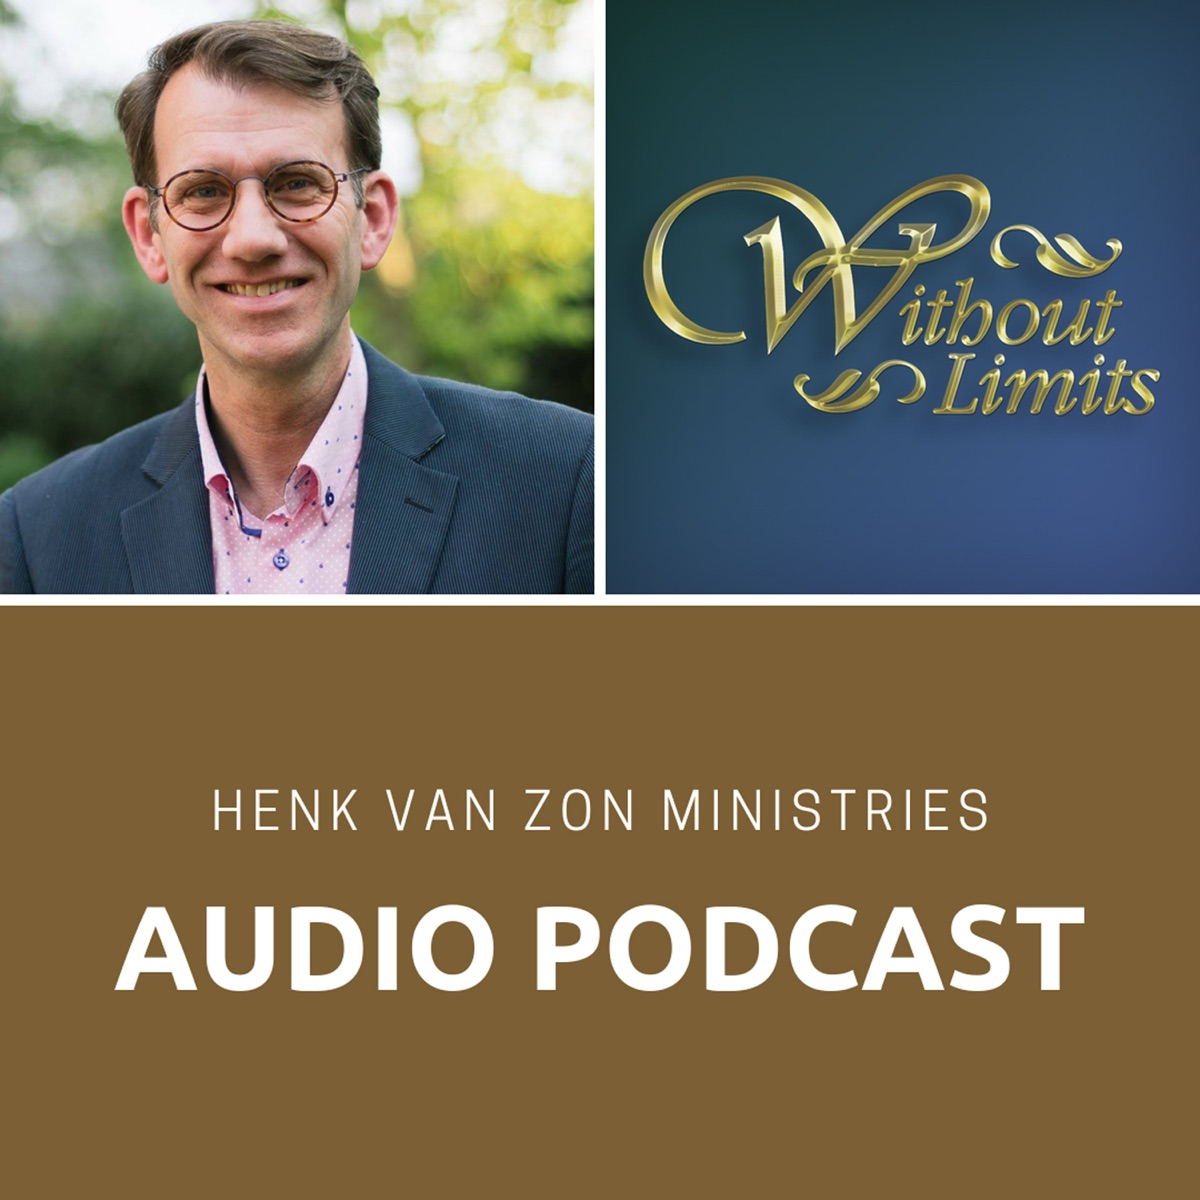 Without Limits - Henk van Zon